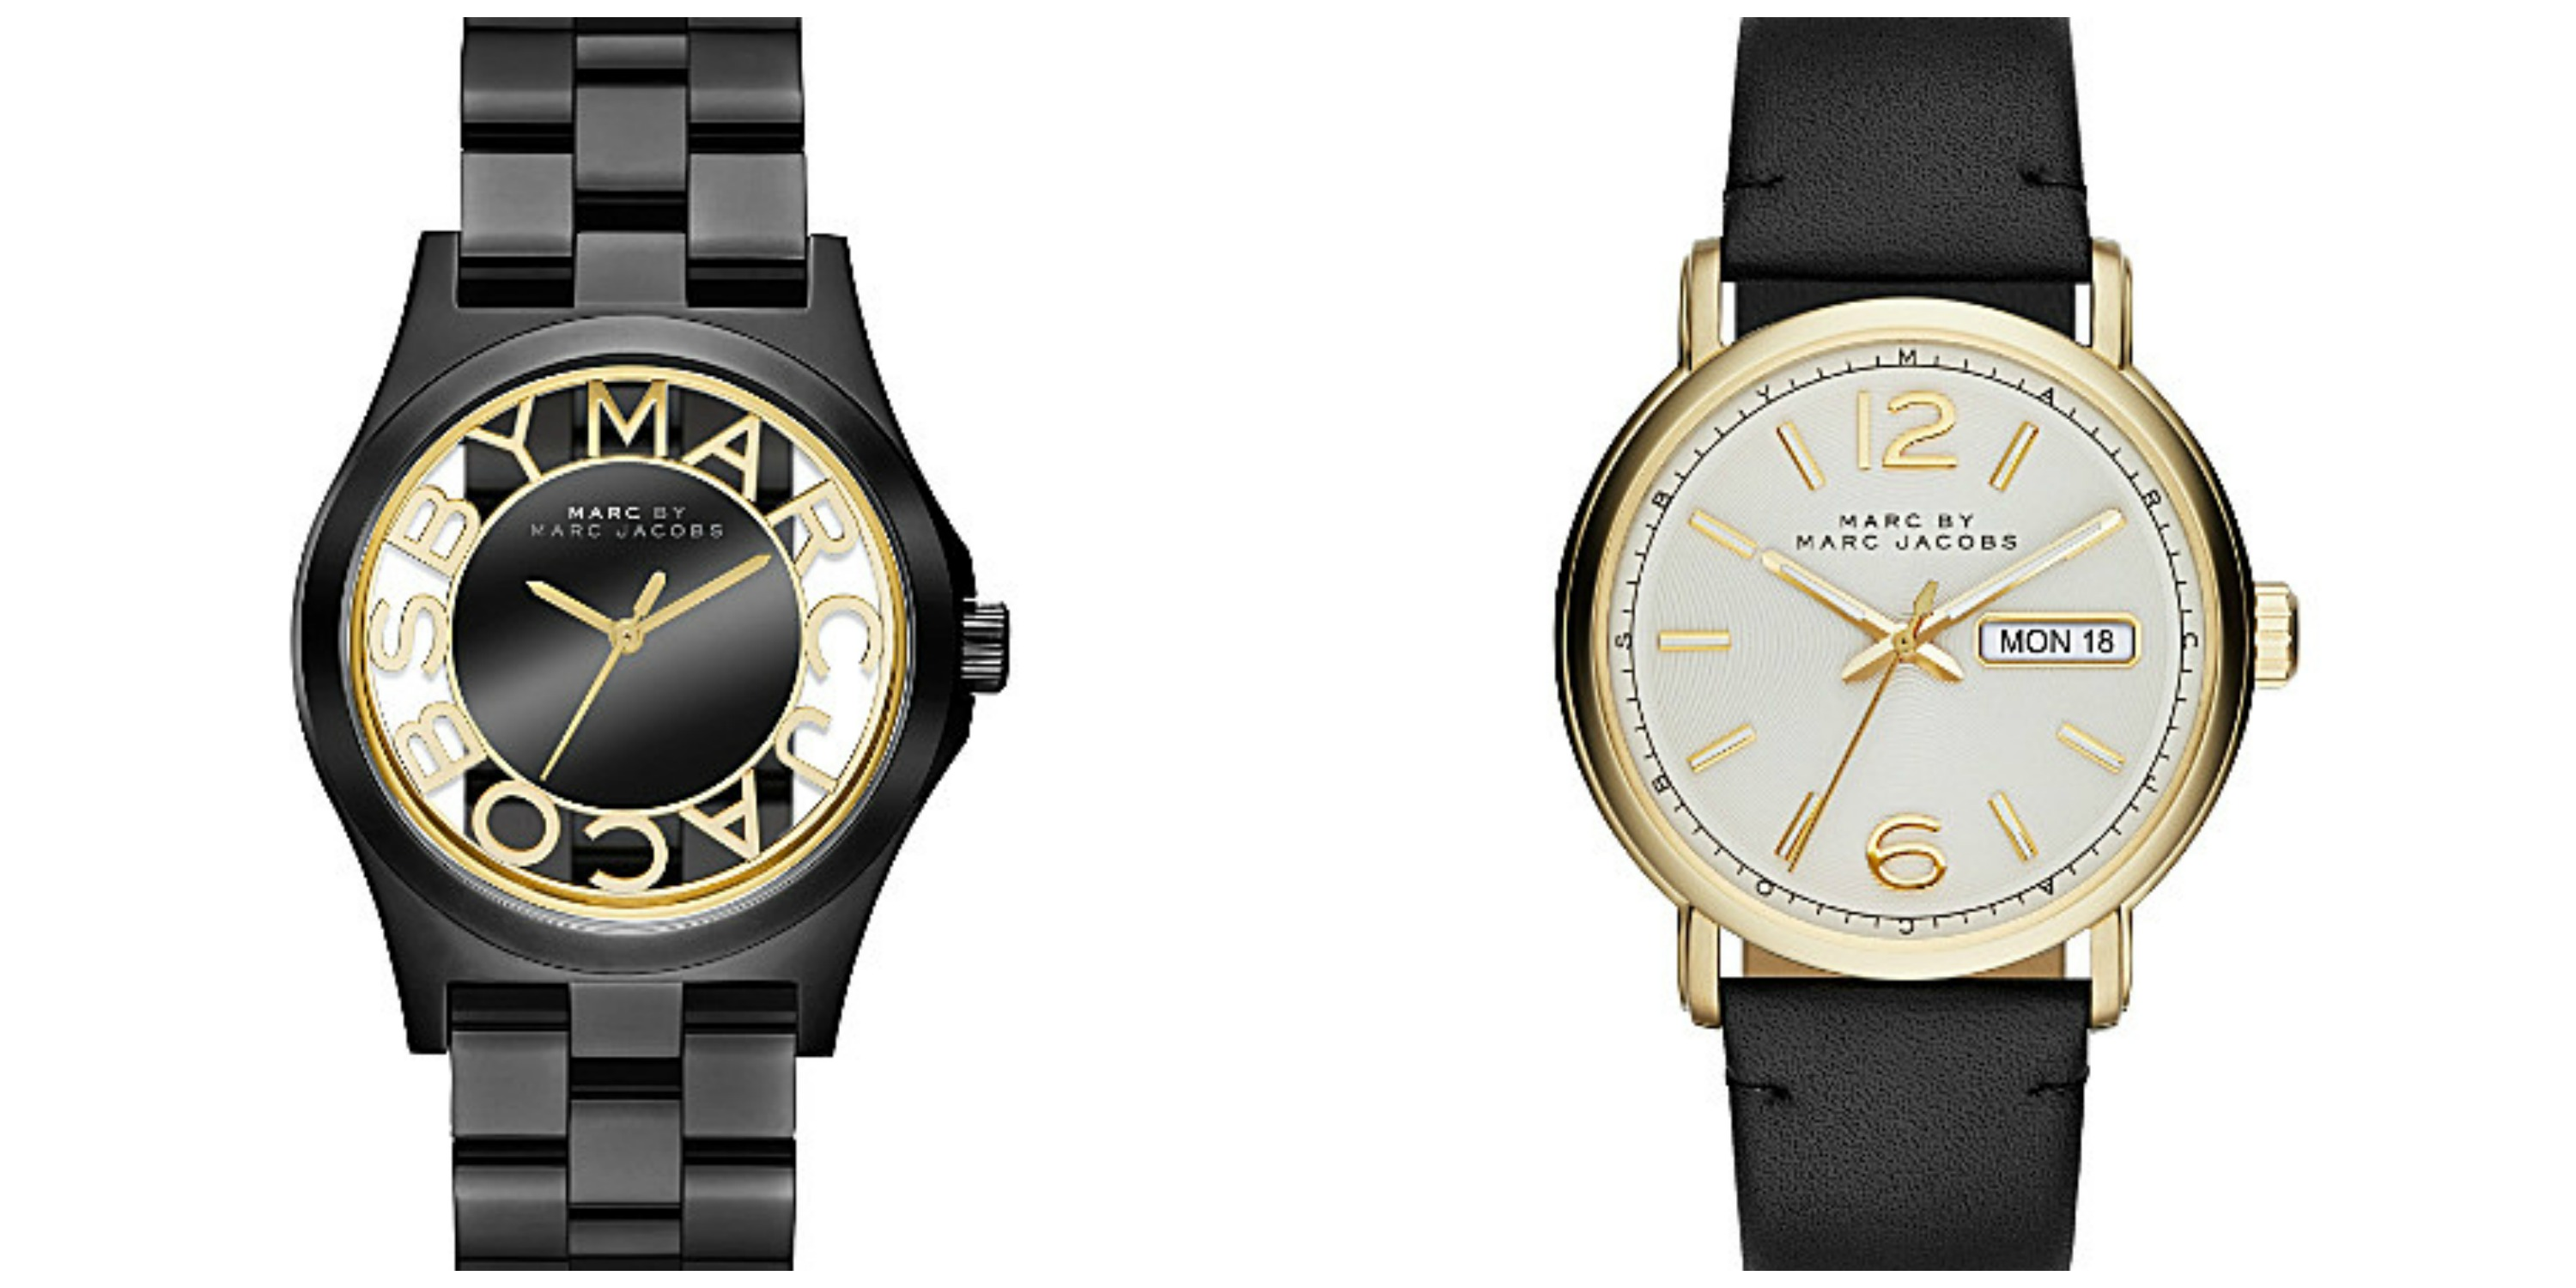 MARC BY MARC JACOBS Left: Mbm3255 henry stainless steel watch £239.00 Right: Mbm5081 stainless steel and leather fergus watch £219.00